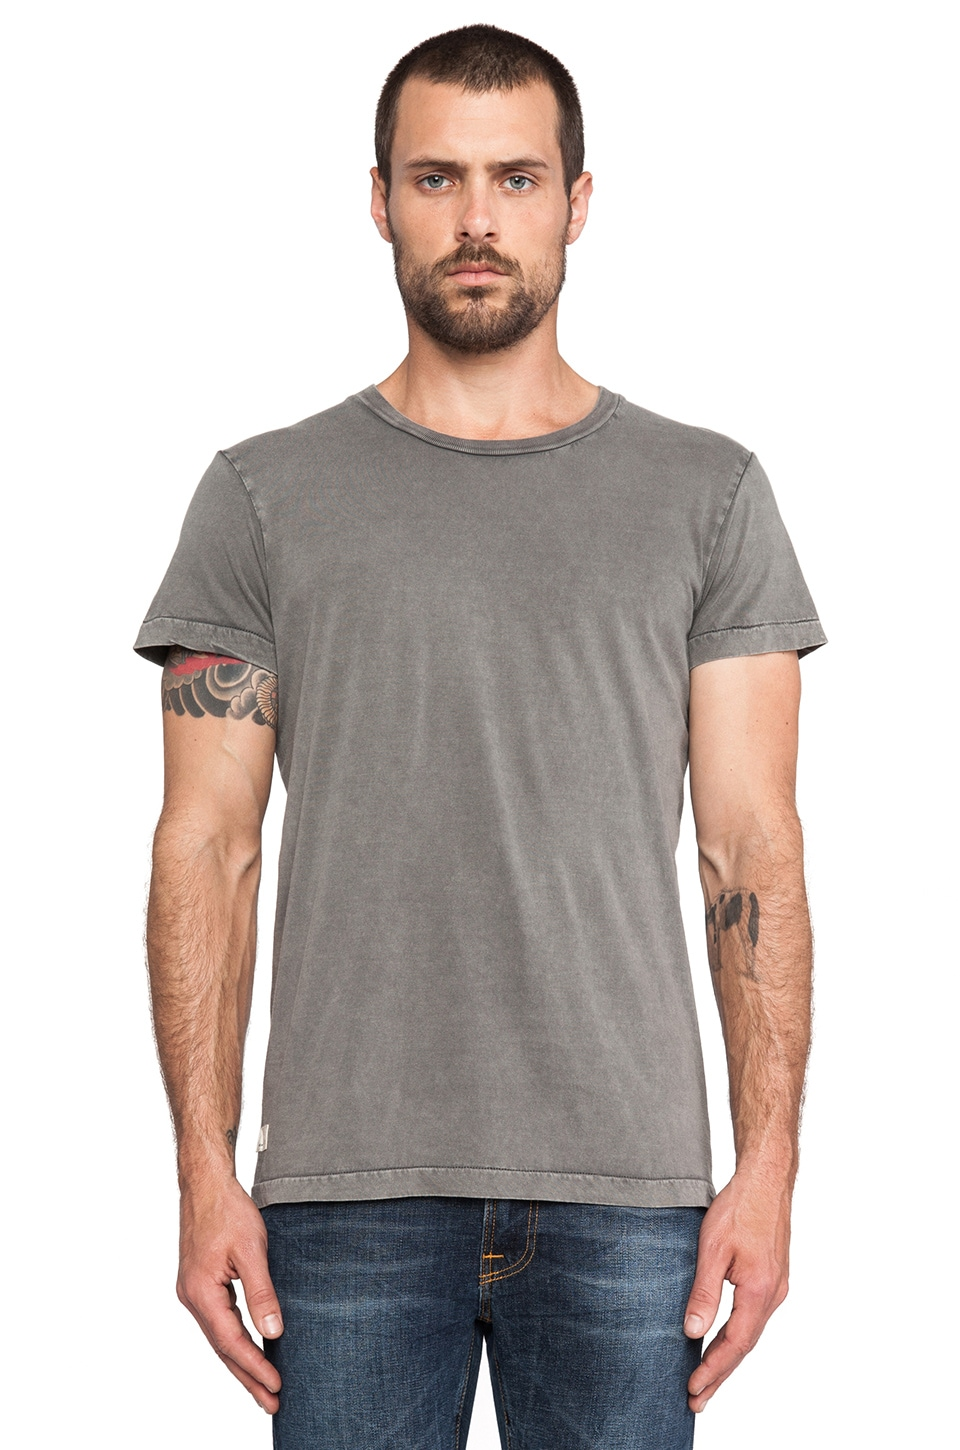 NEUW 3 Crown Enkel Service Tee in Grey